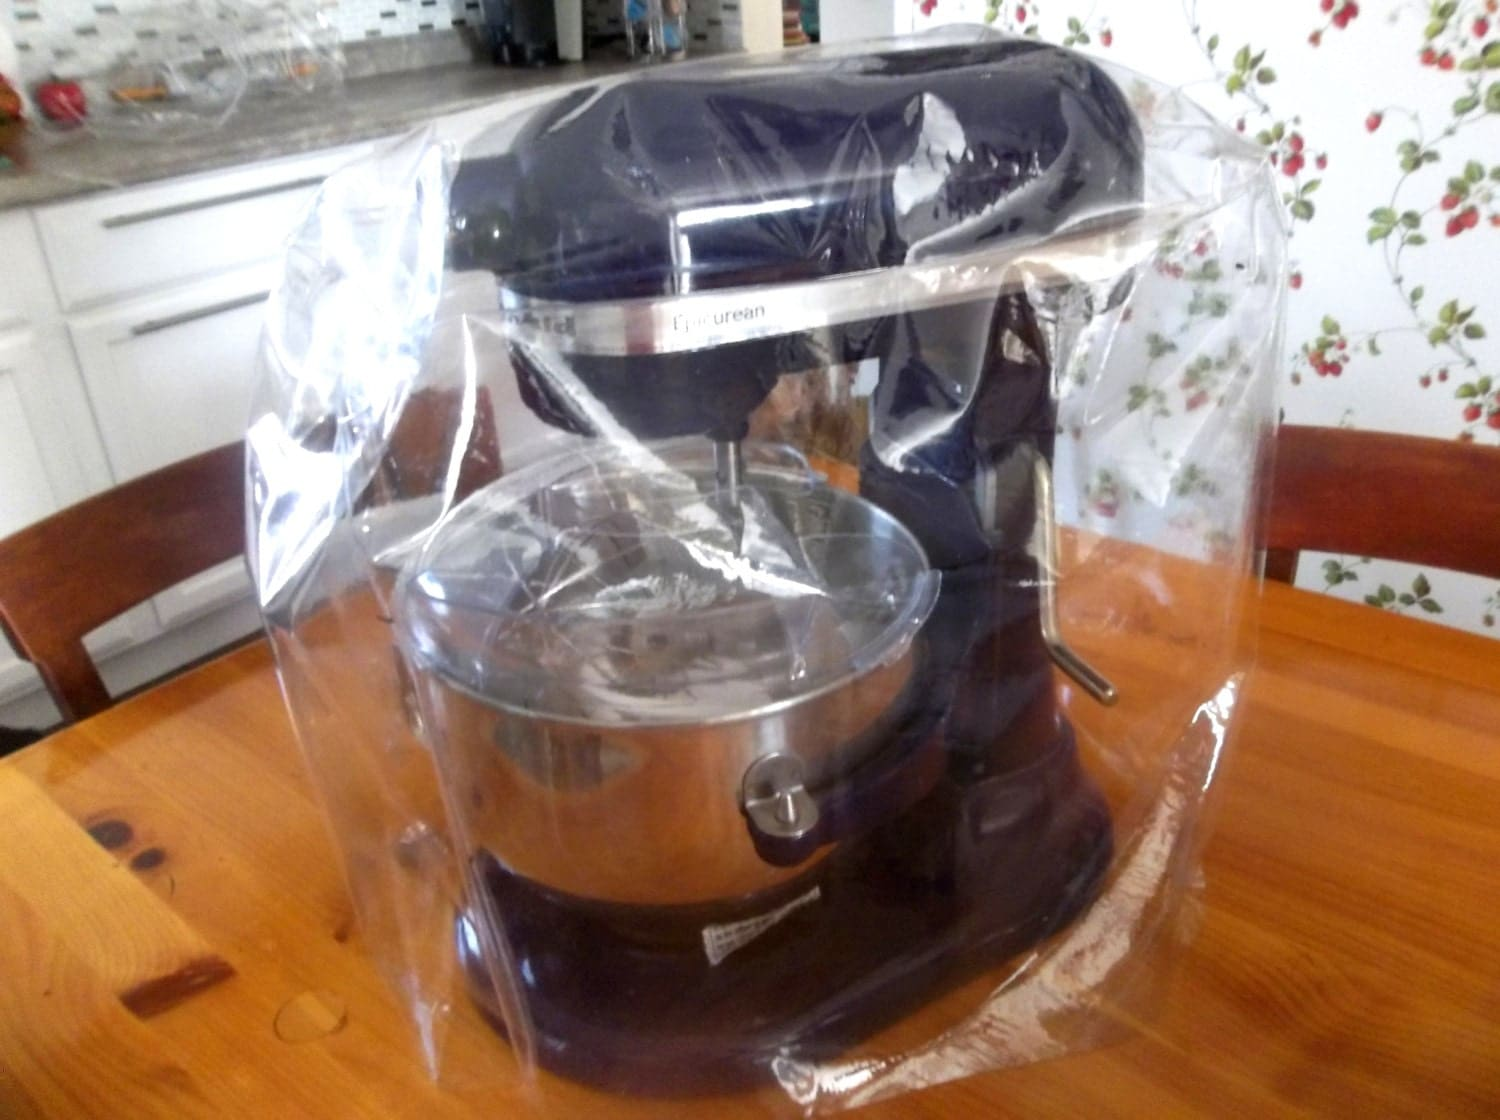 kitchen aid mixer cover sink sprayer replacement appliance covers clear vinyl kitchenaid coverstoasters